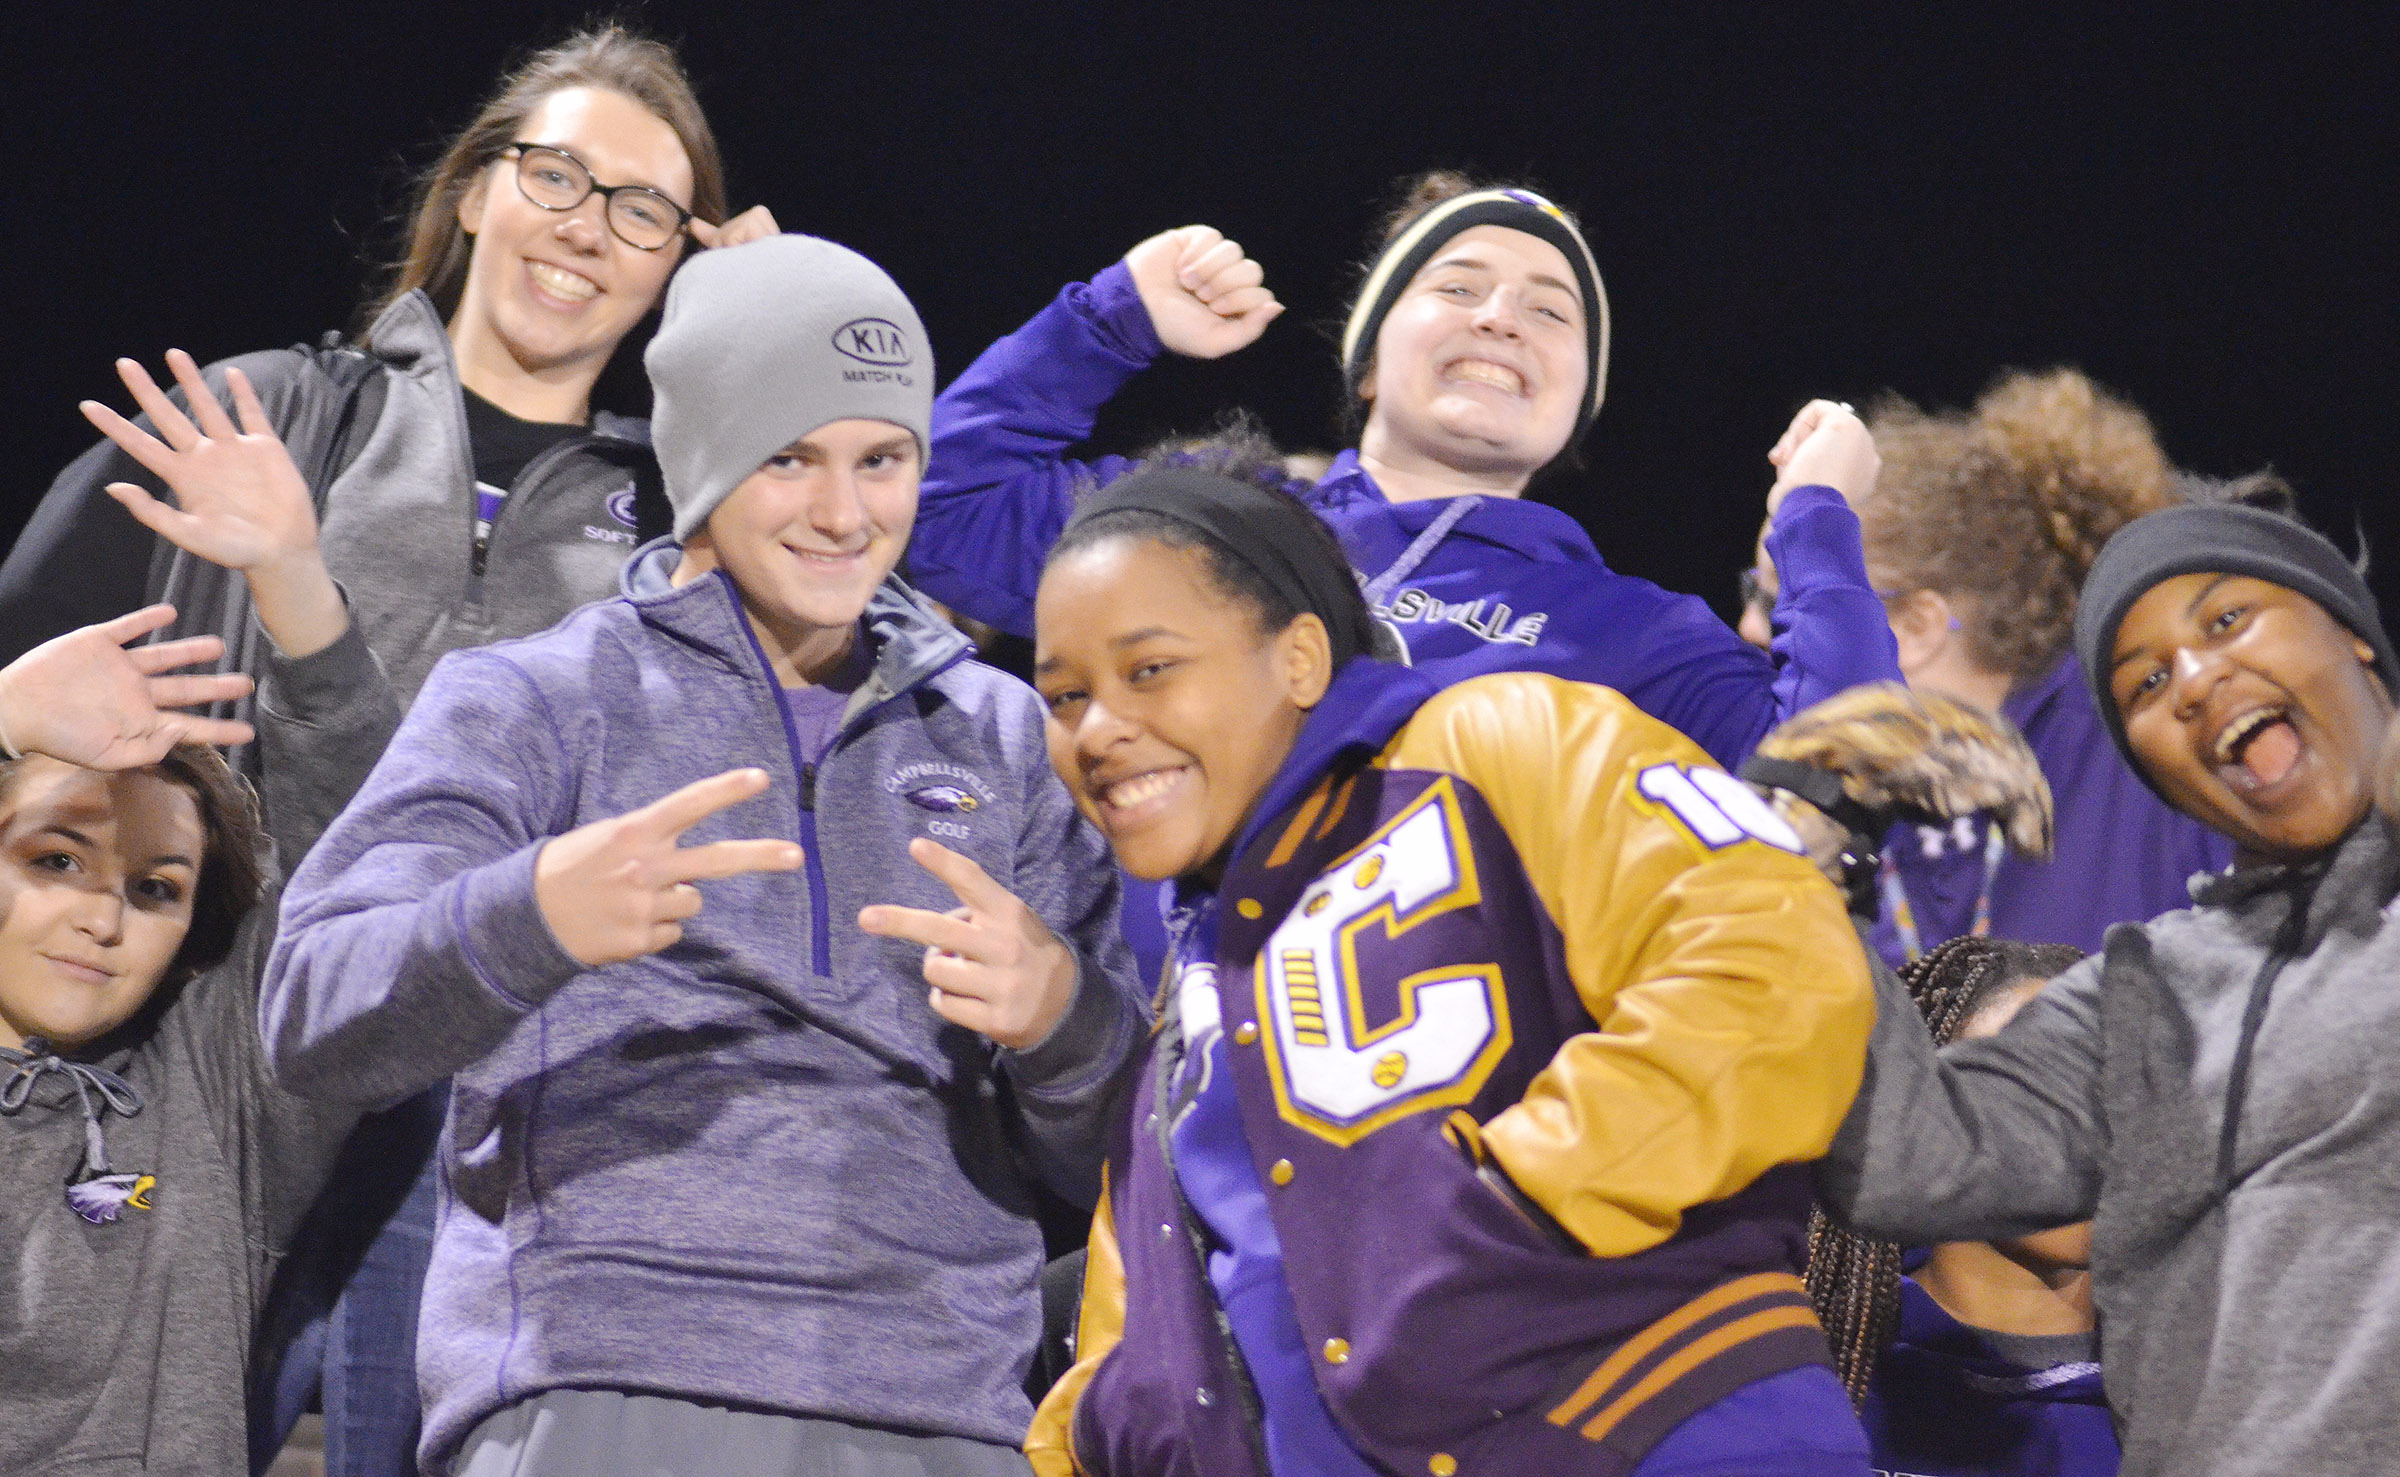 CHS students, from left, freshmen Kenzi Forbis and Abi Wiedewitsch, seniors Alex Doss, Kayla Young and Caitlin Bright and junior Kiyah Barnett cheer for the Eagles.